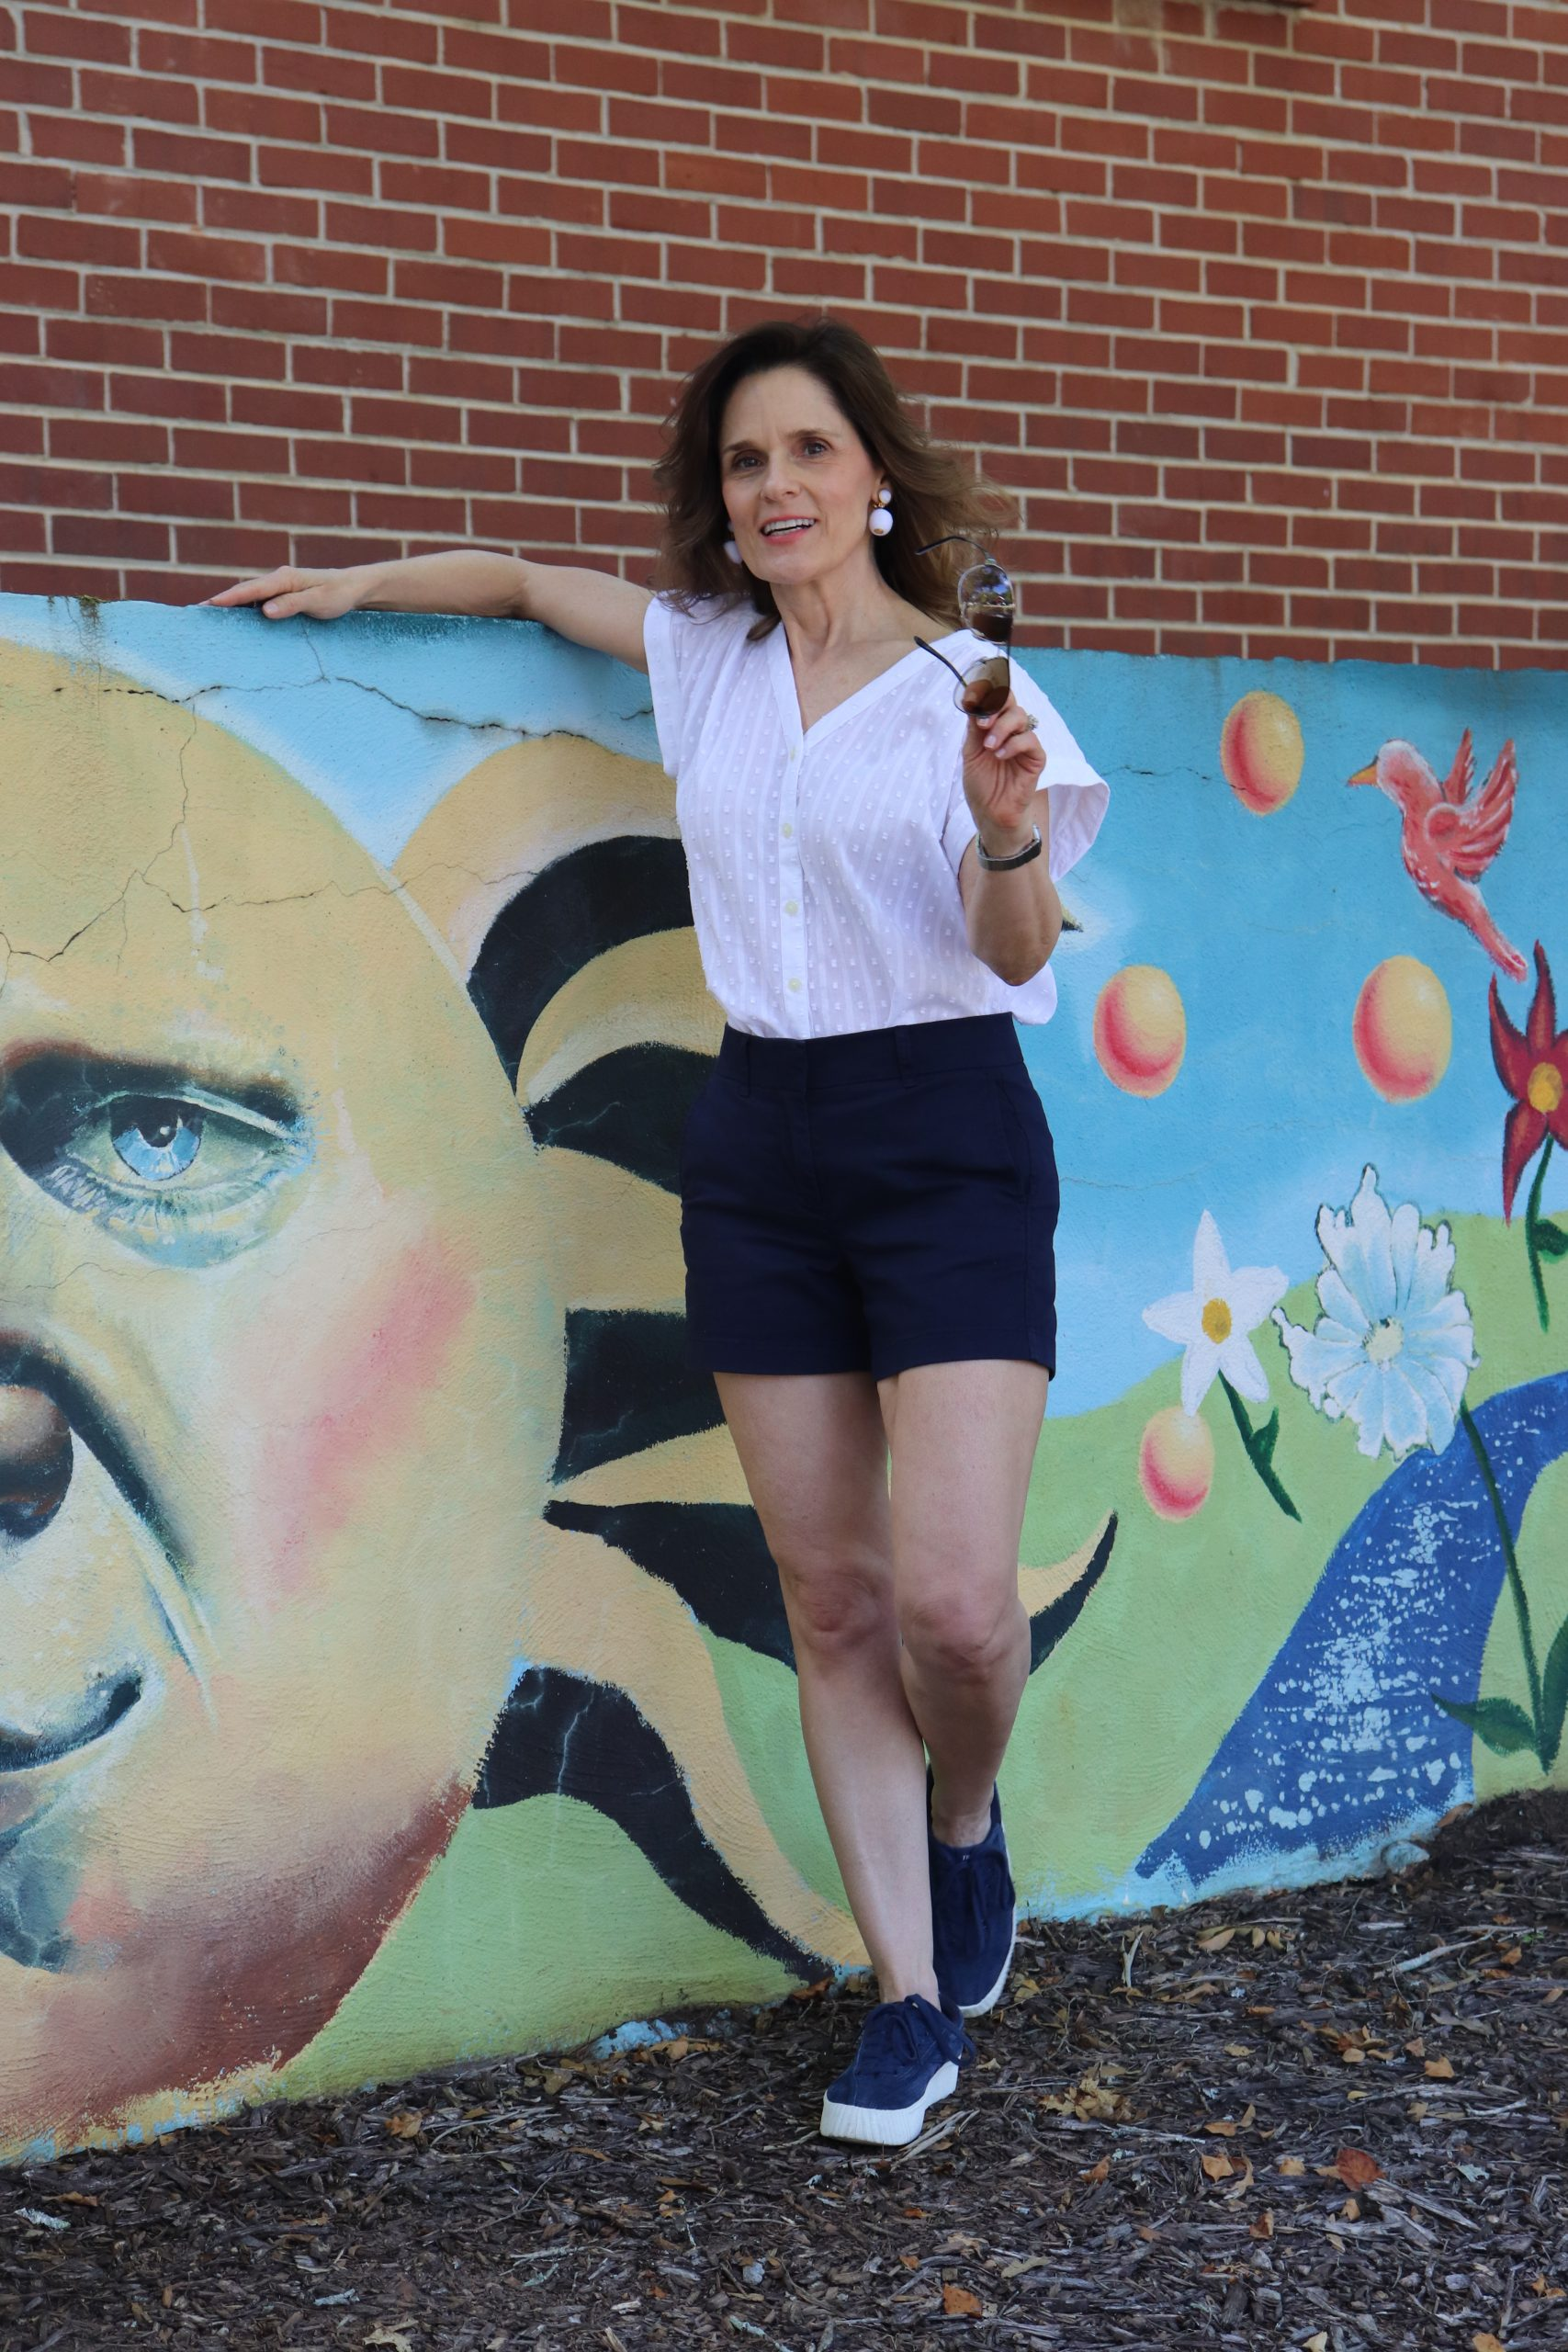 woman over 50 standing in front of a mural wearing a white top and shorts